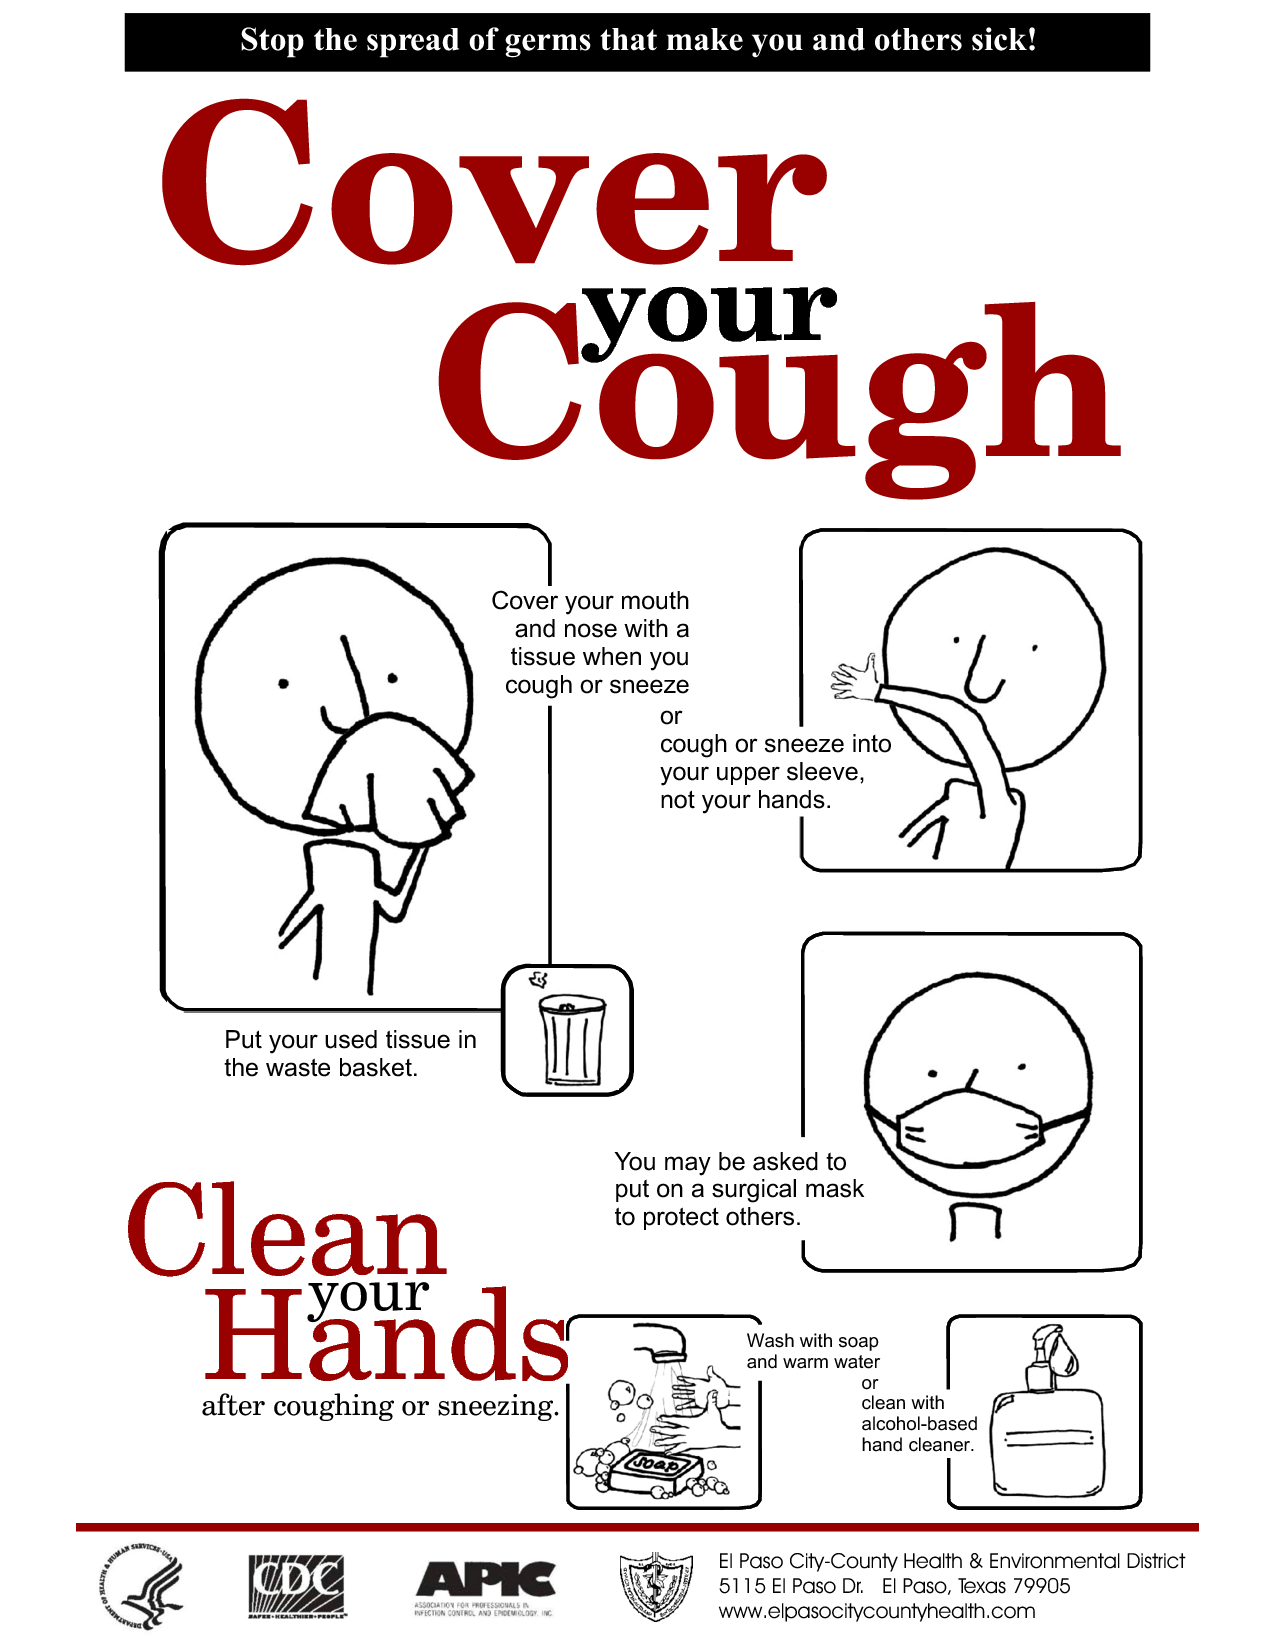 Covered clipart cough cold BBCpersian7 Clipart cough Cover clipart